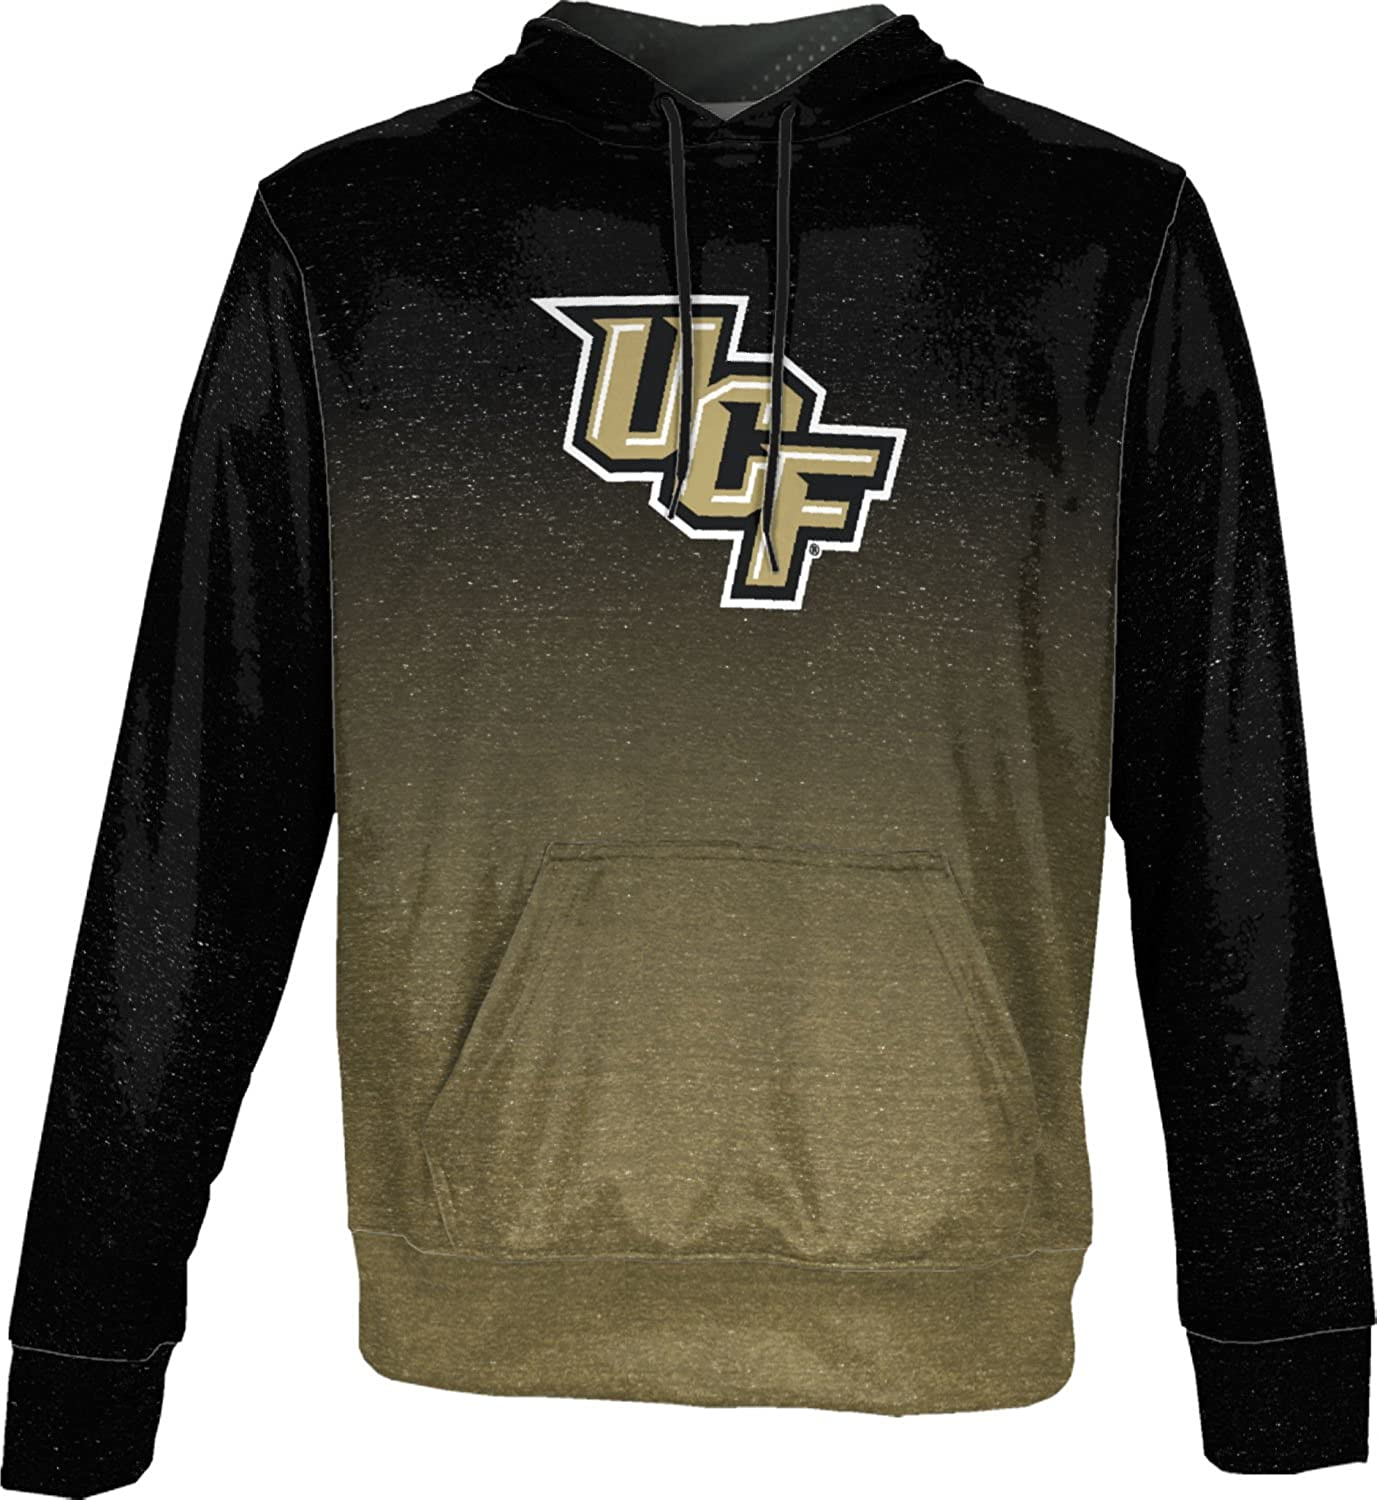 ProSphere University of Central Florida Boys Hoodie Sweatshirt Ombre